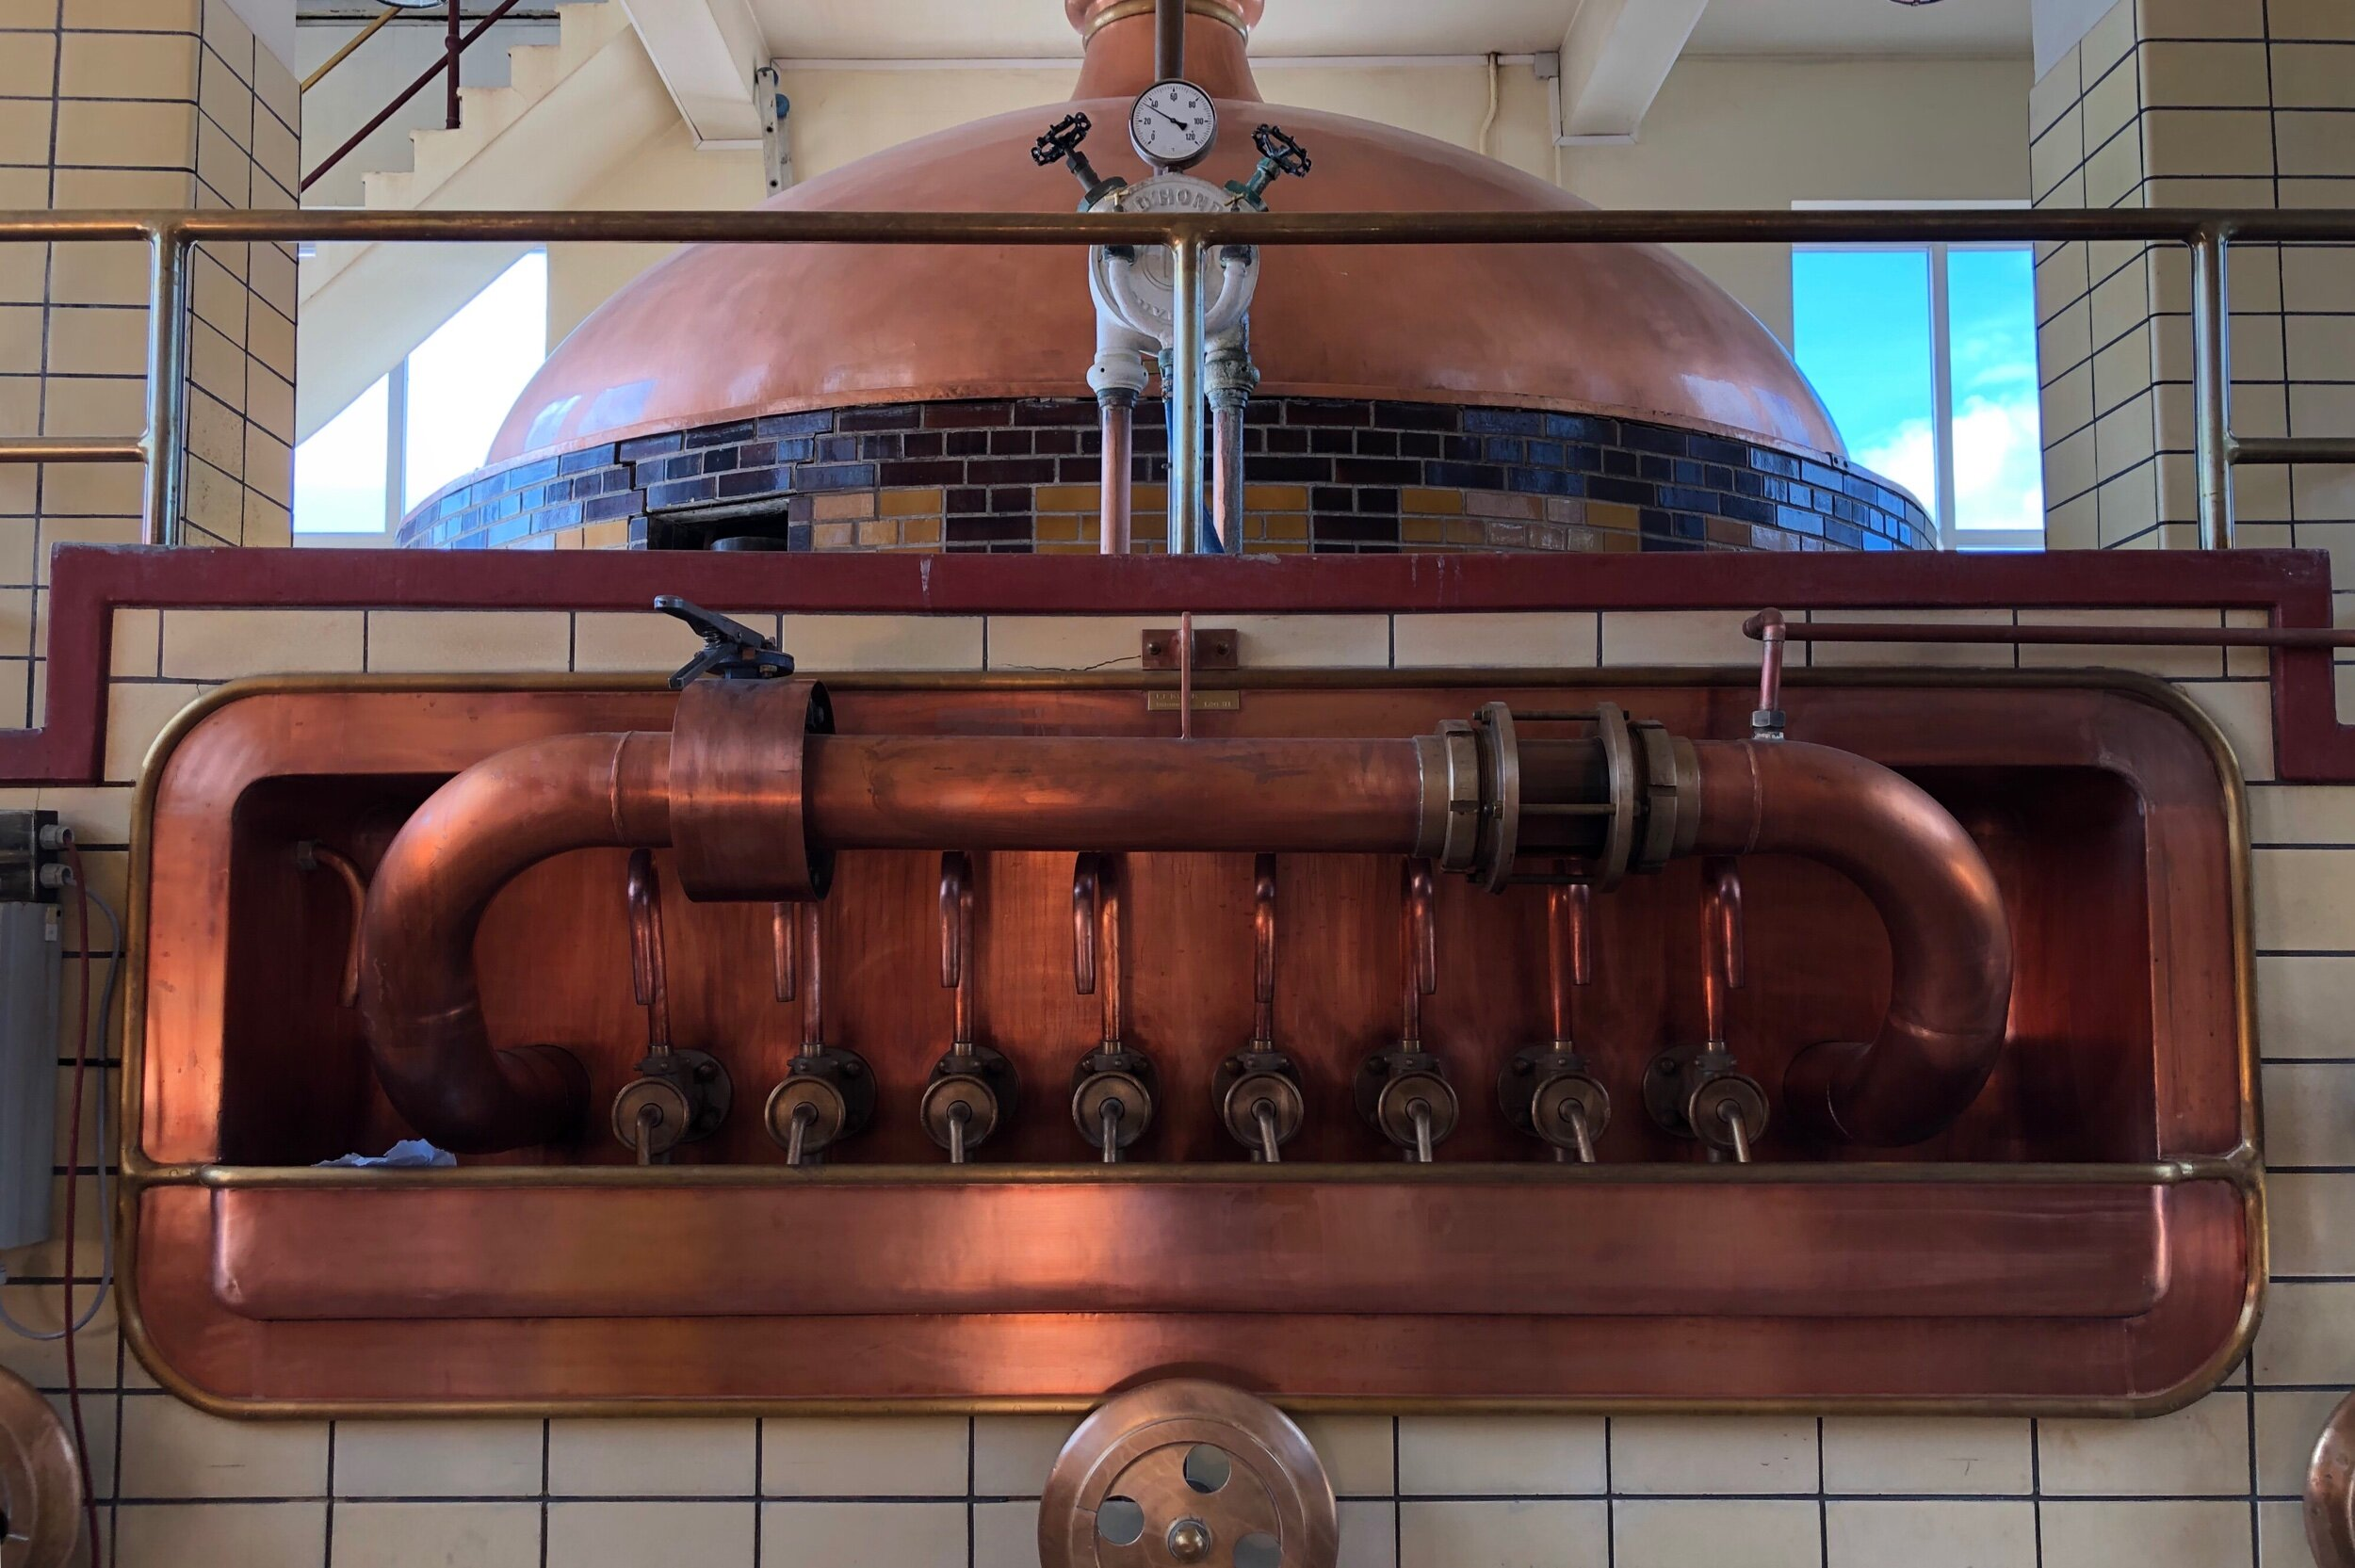 The mash tun in an alcove above the grant, which the brewery no longer uses. This was an absolute classic design.